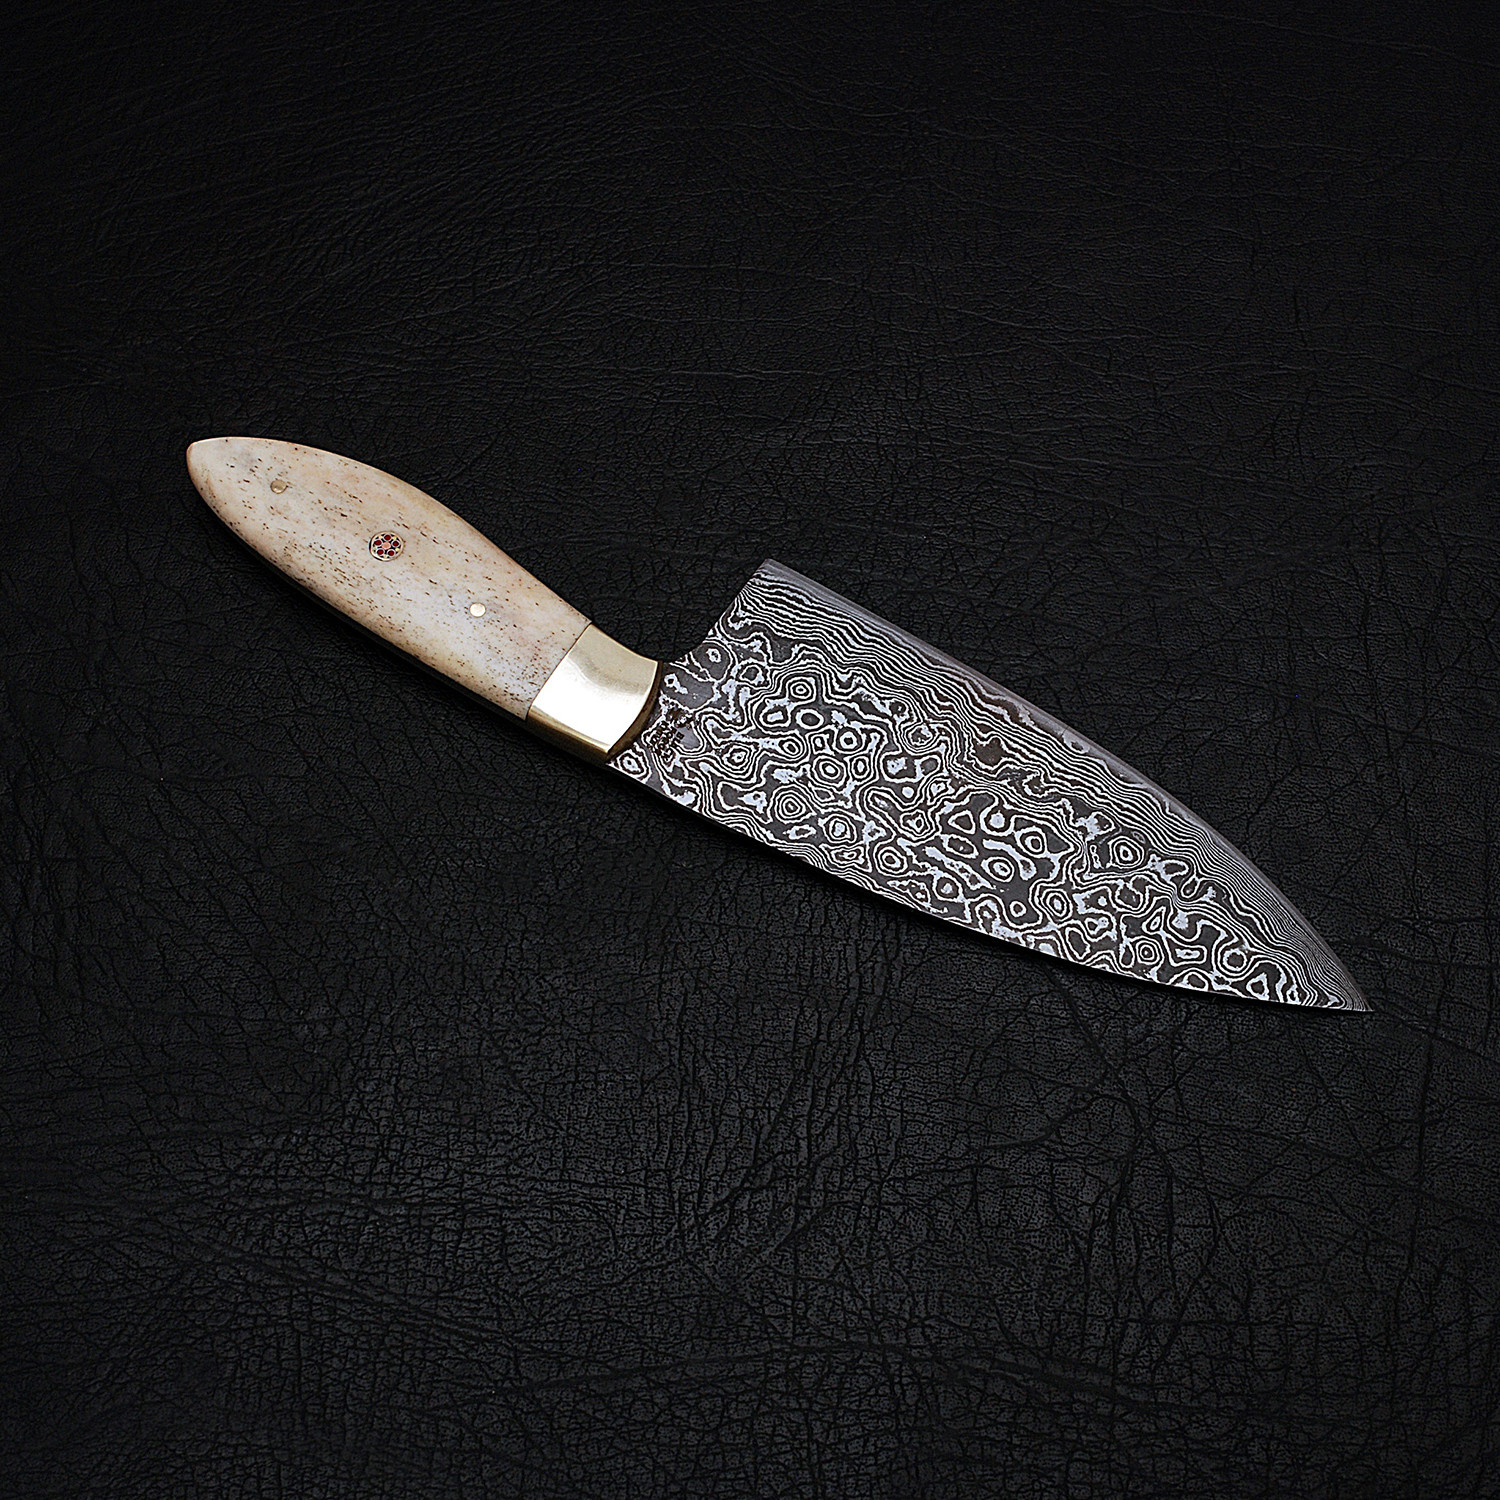 damascus kitchen knife // 9173 - black forge knives